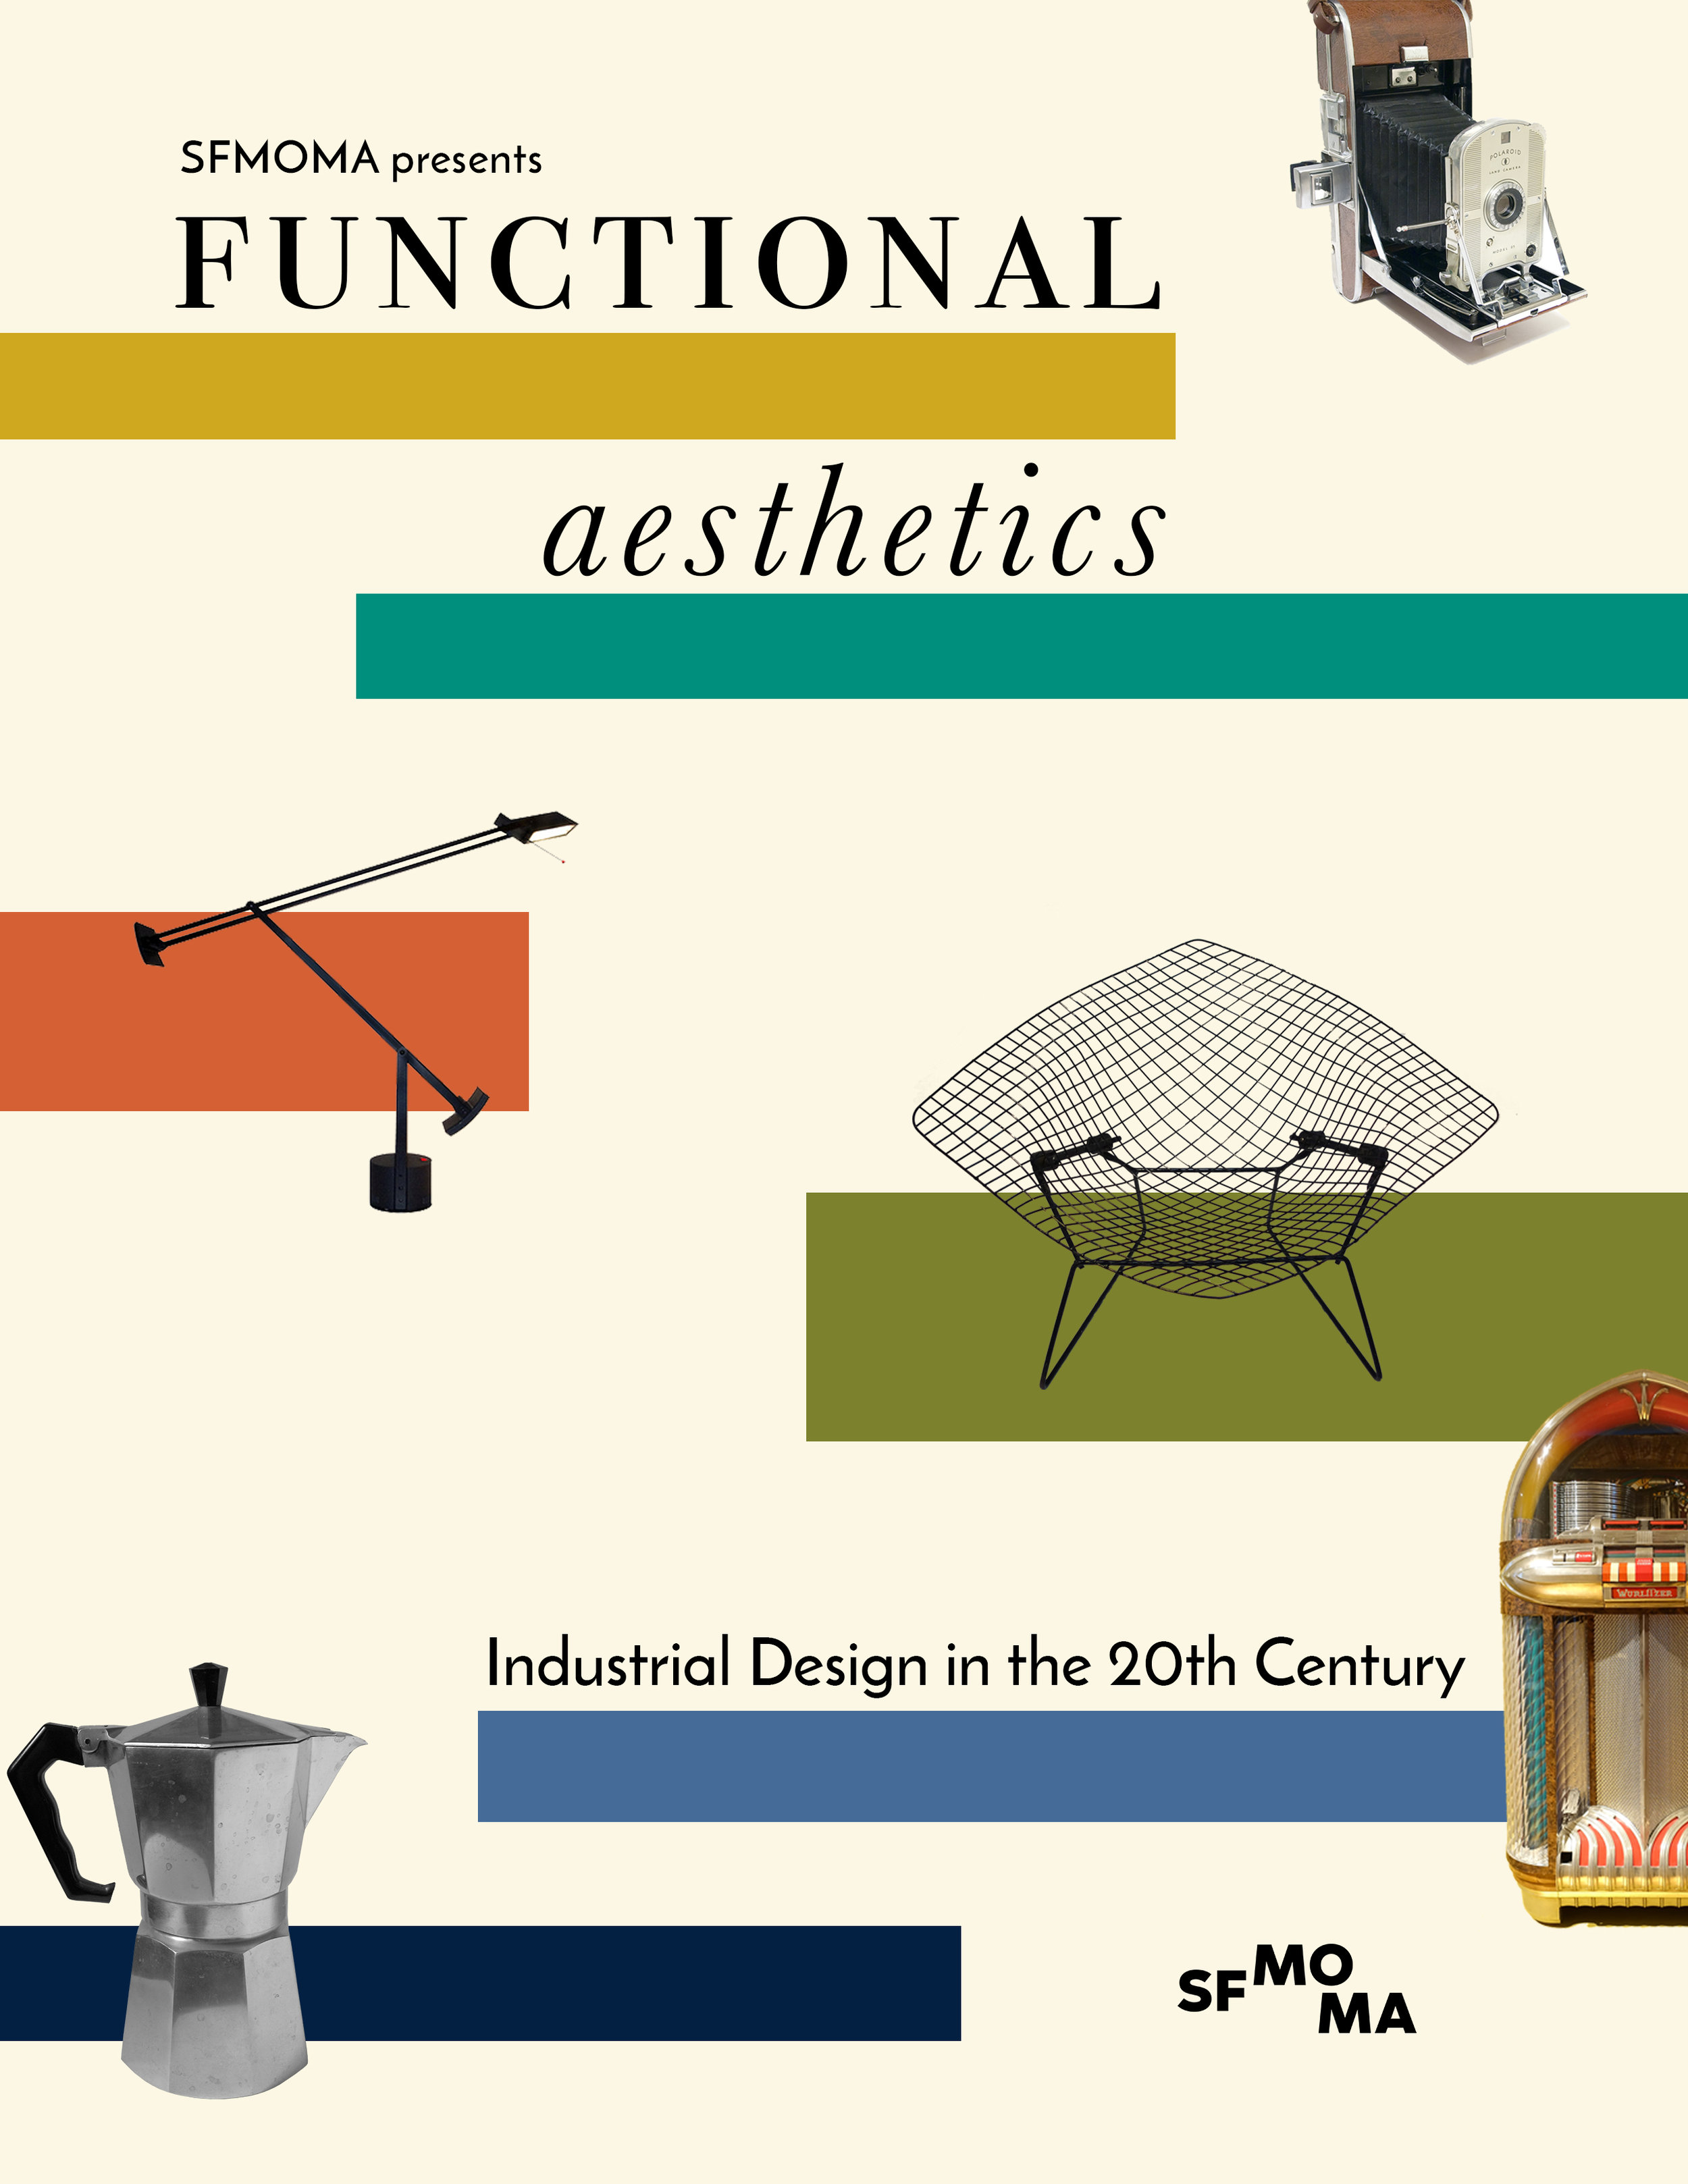 Previous Project: Functional Aesthetics Poster - Fictional Exhibition